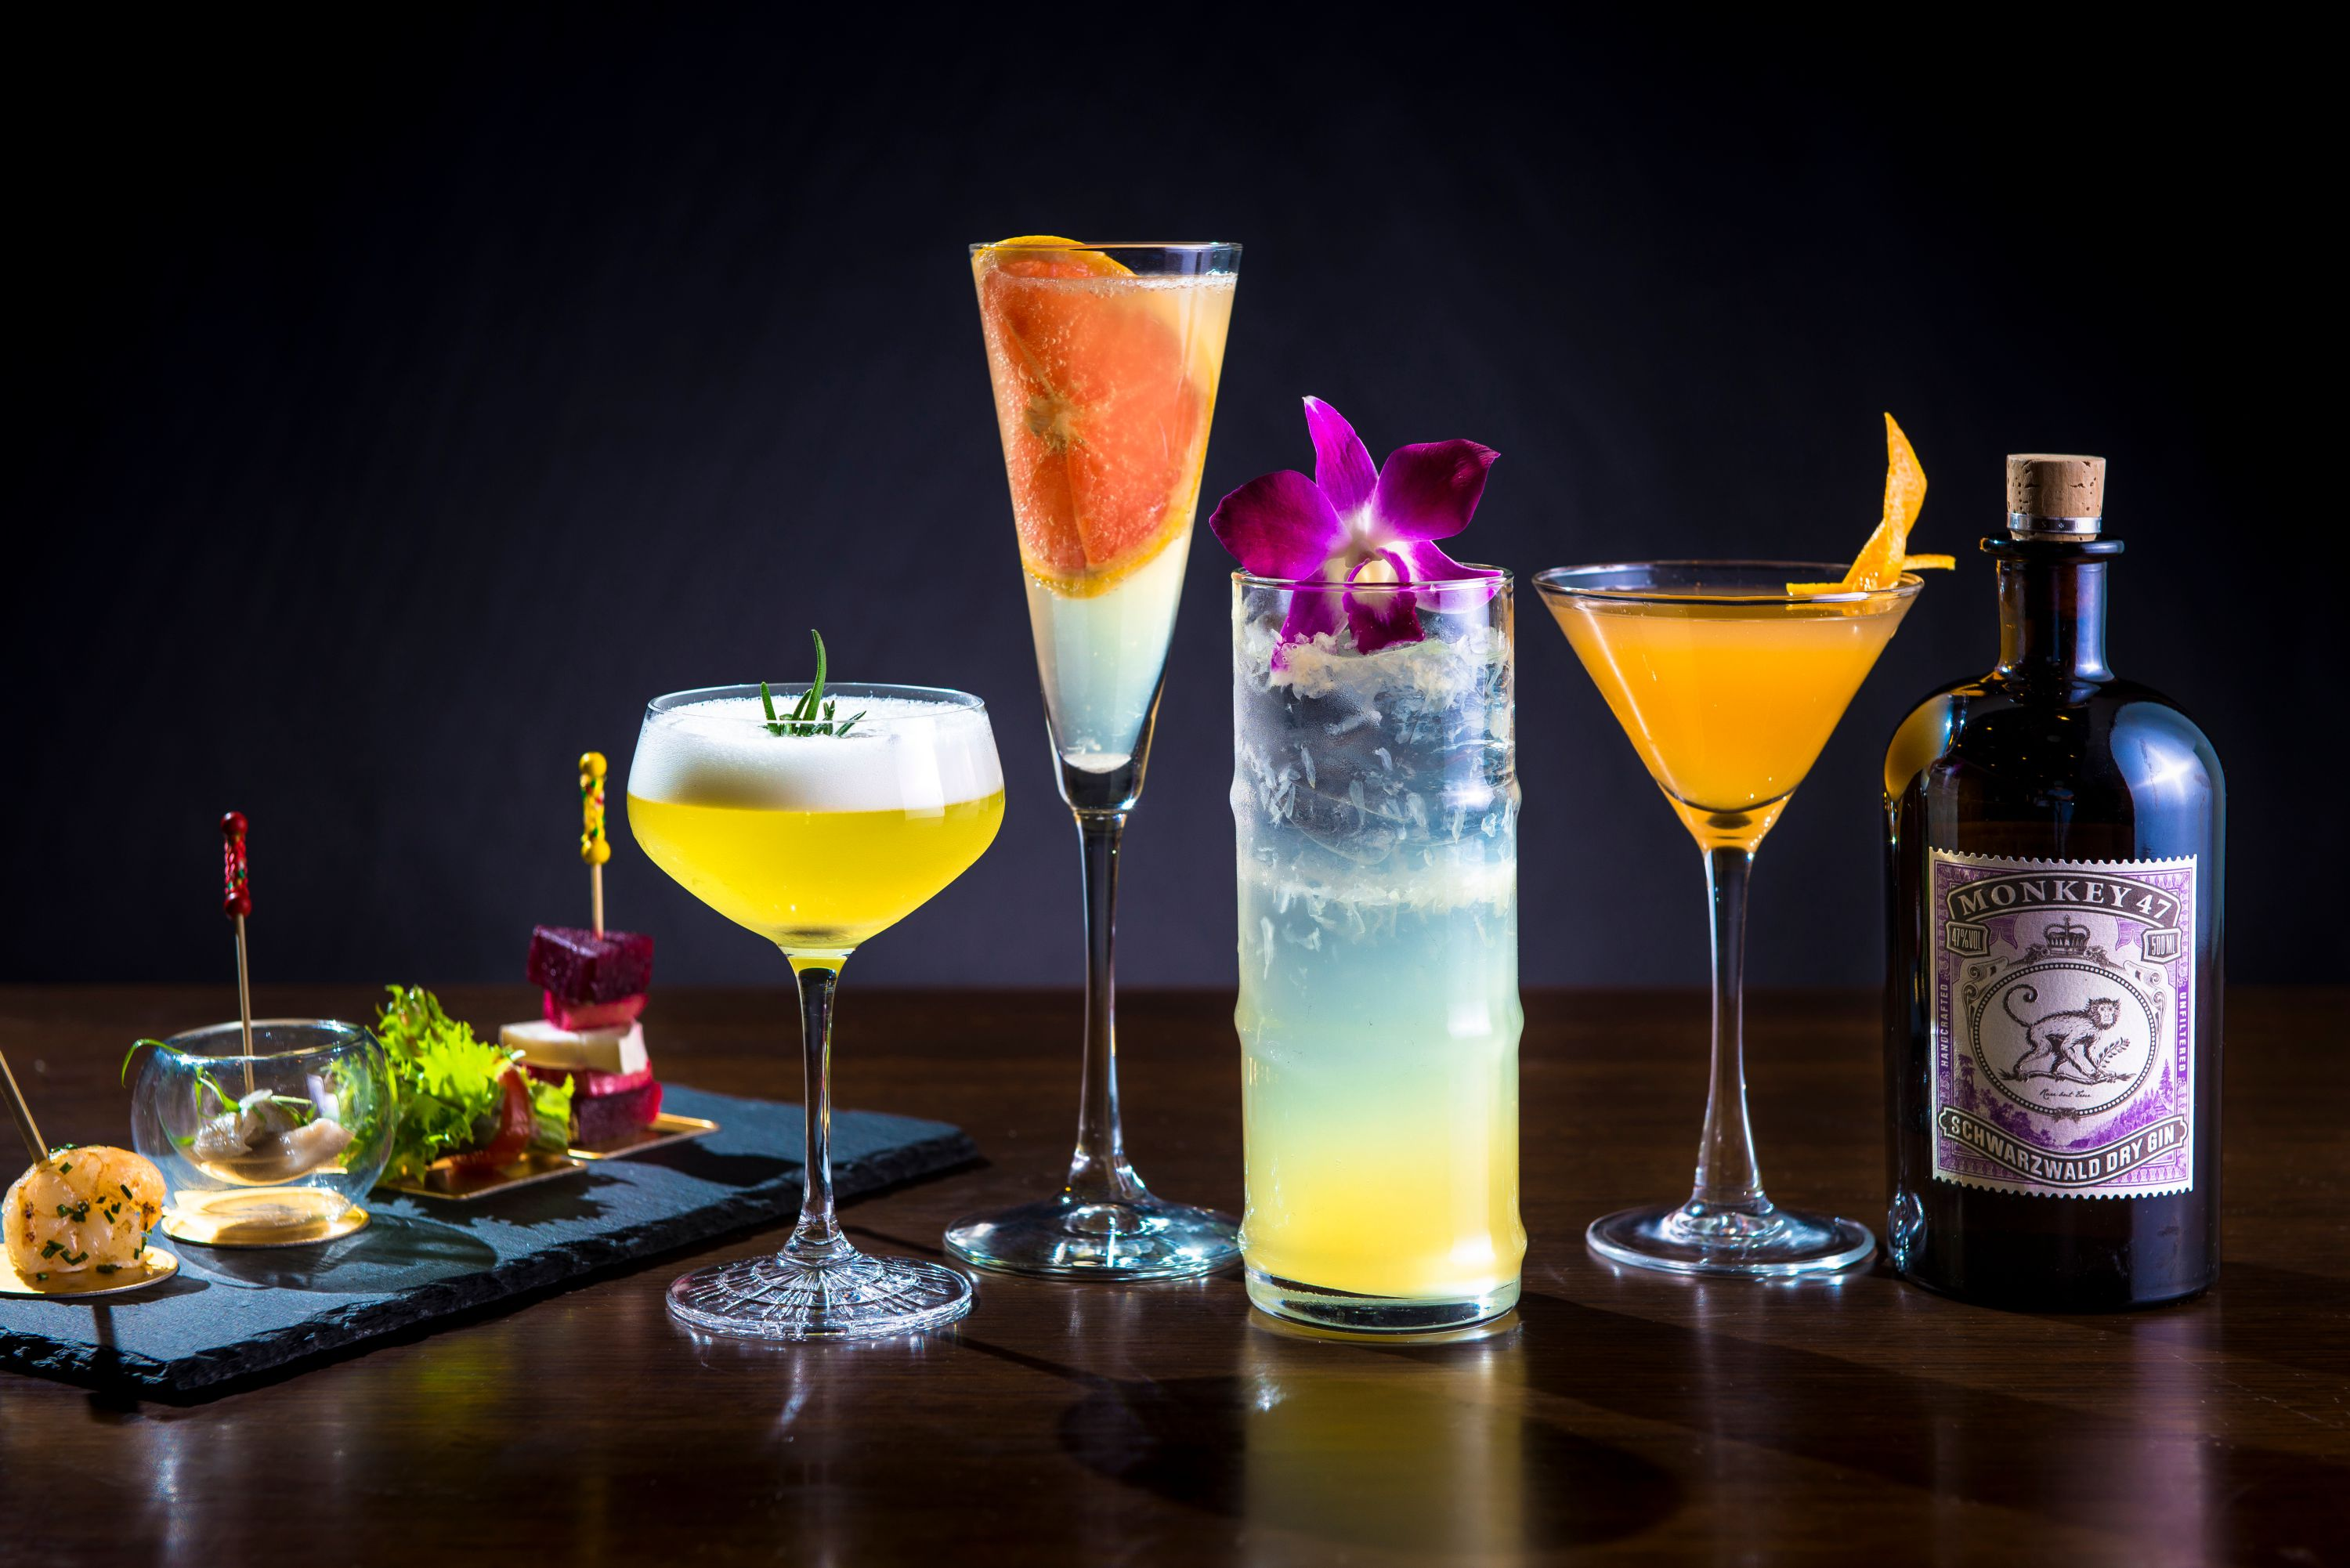 Sip on Monkey 47 gin cocktails created by 28 Hong Kong Street's former head  barman | Lifestyle Asia Hong Kong